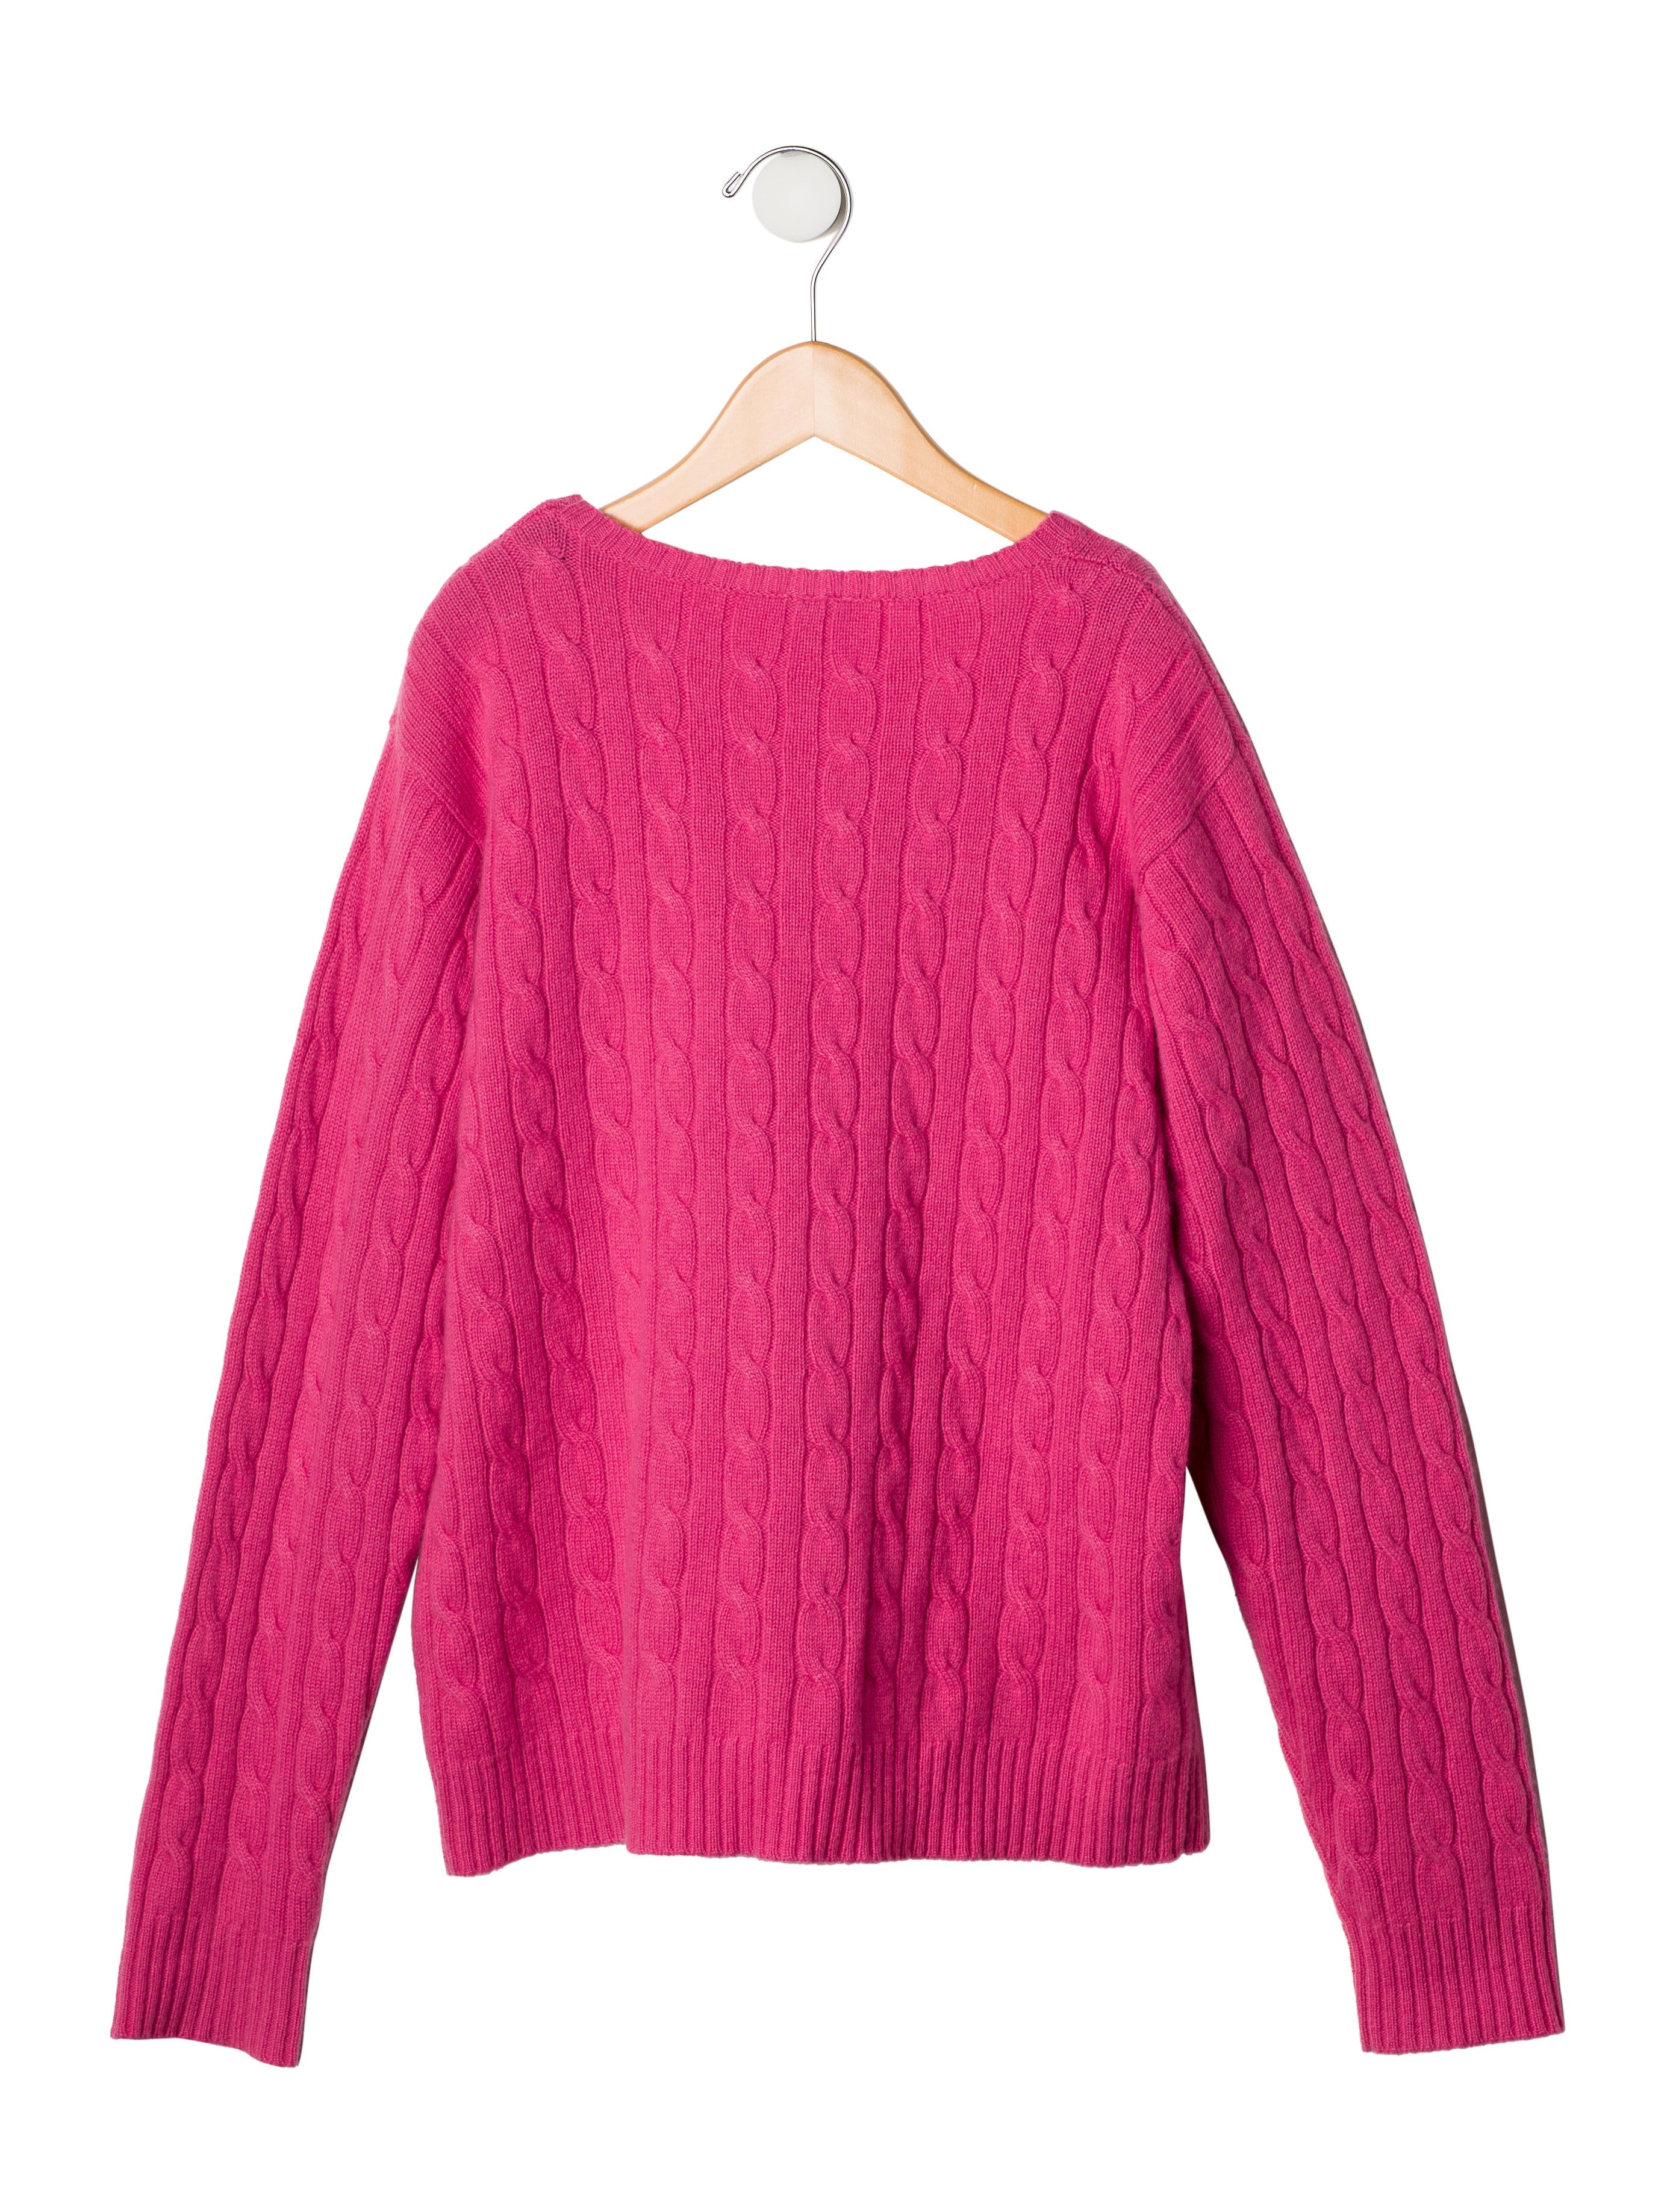 Find a Cable Knit Sweater for Women, a Cable Knit Sweater for Juniors, and a Cable Knit Sweater Outfit at Macy's. Macy's Presents: The Edit - A curated mix of fashion and inspiration Check It Out Free Shipping with $49 purchase + Free Store Pickup.